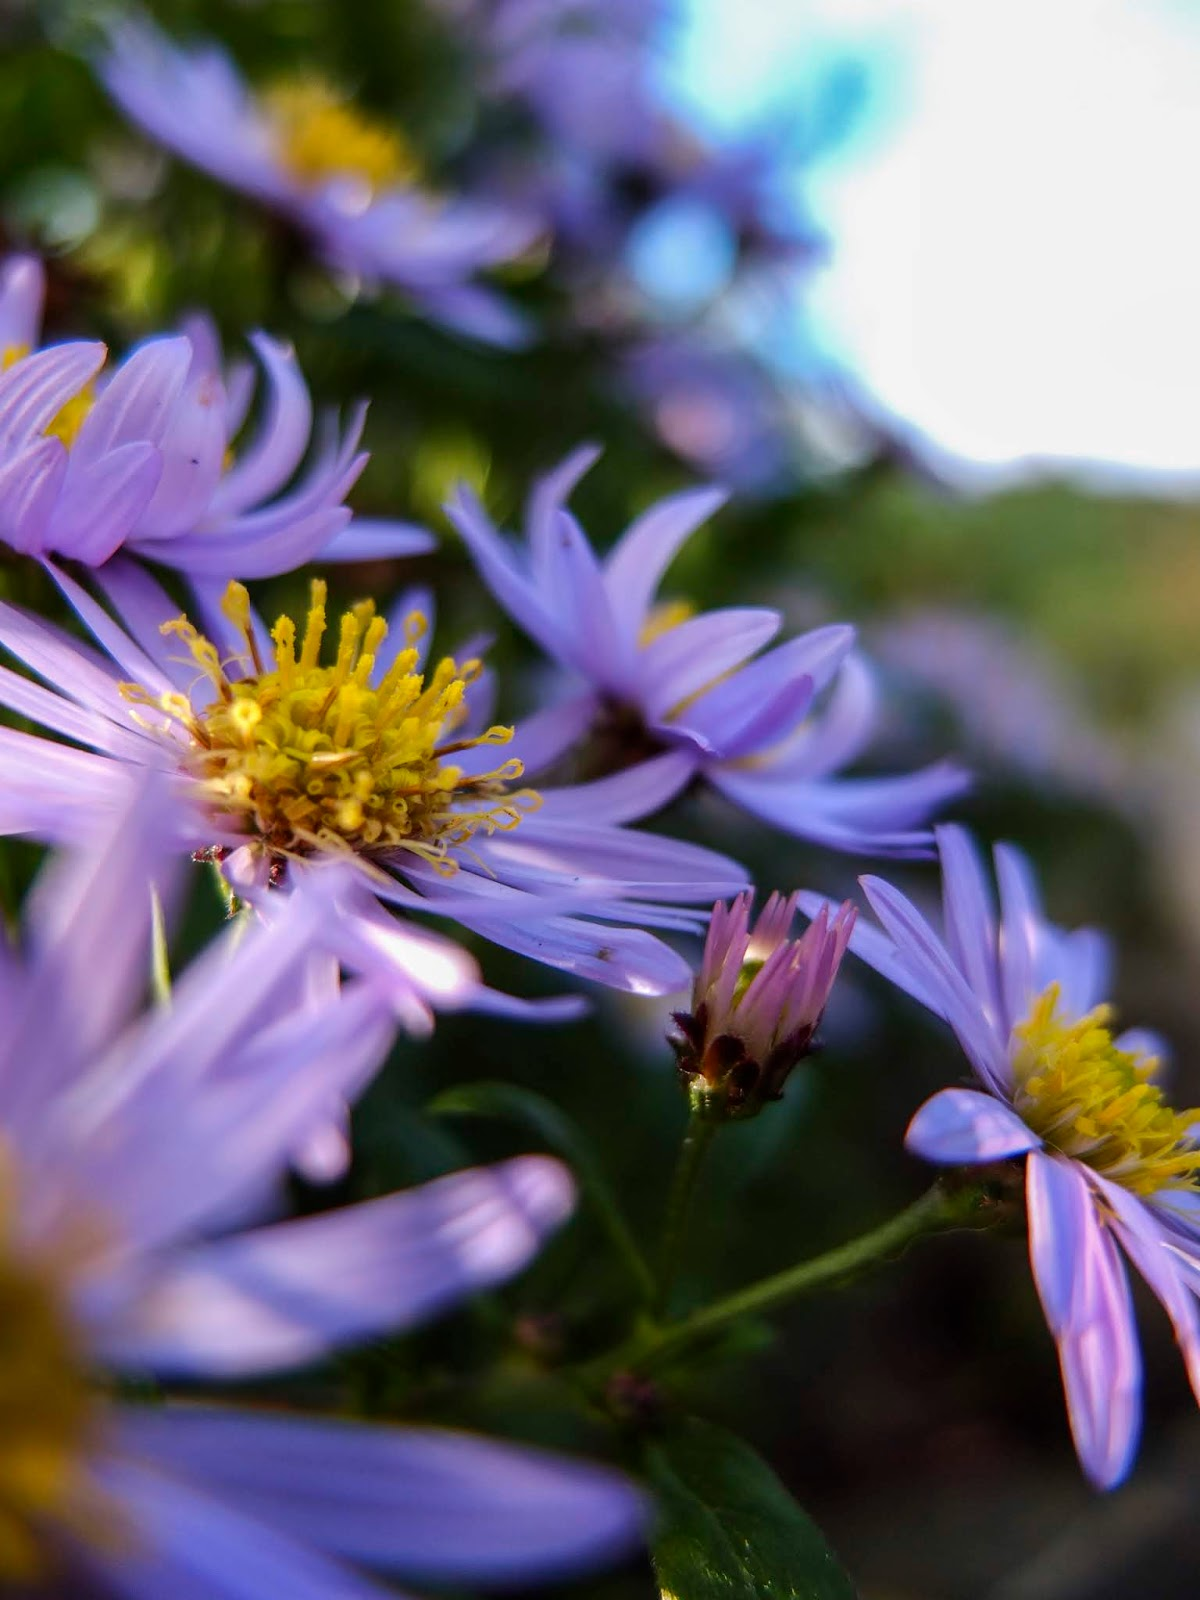 A macro image of Aster flowers in dappled sunlight.